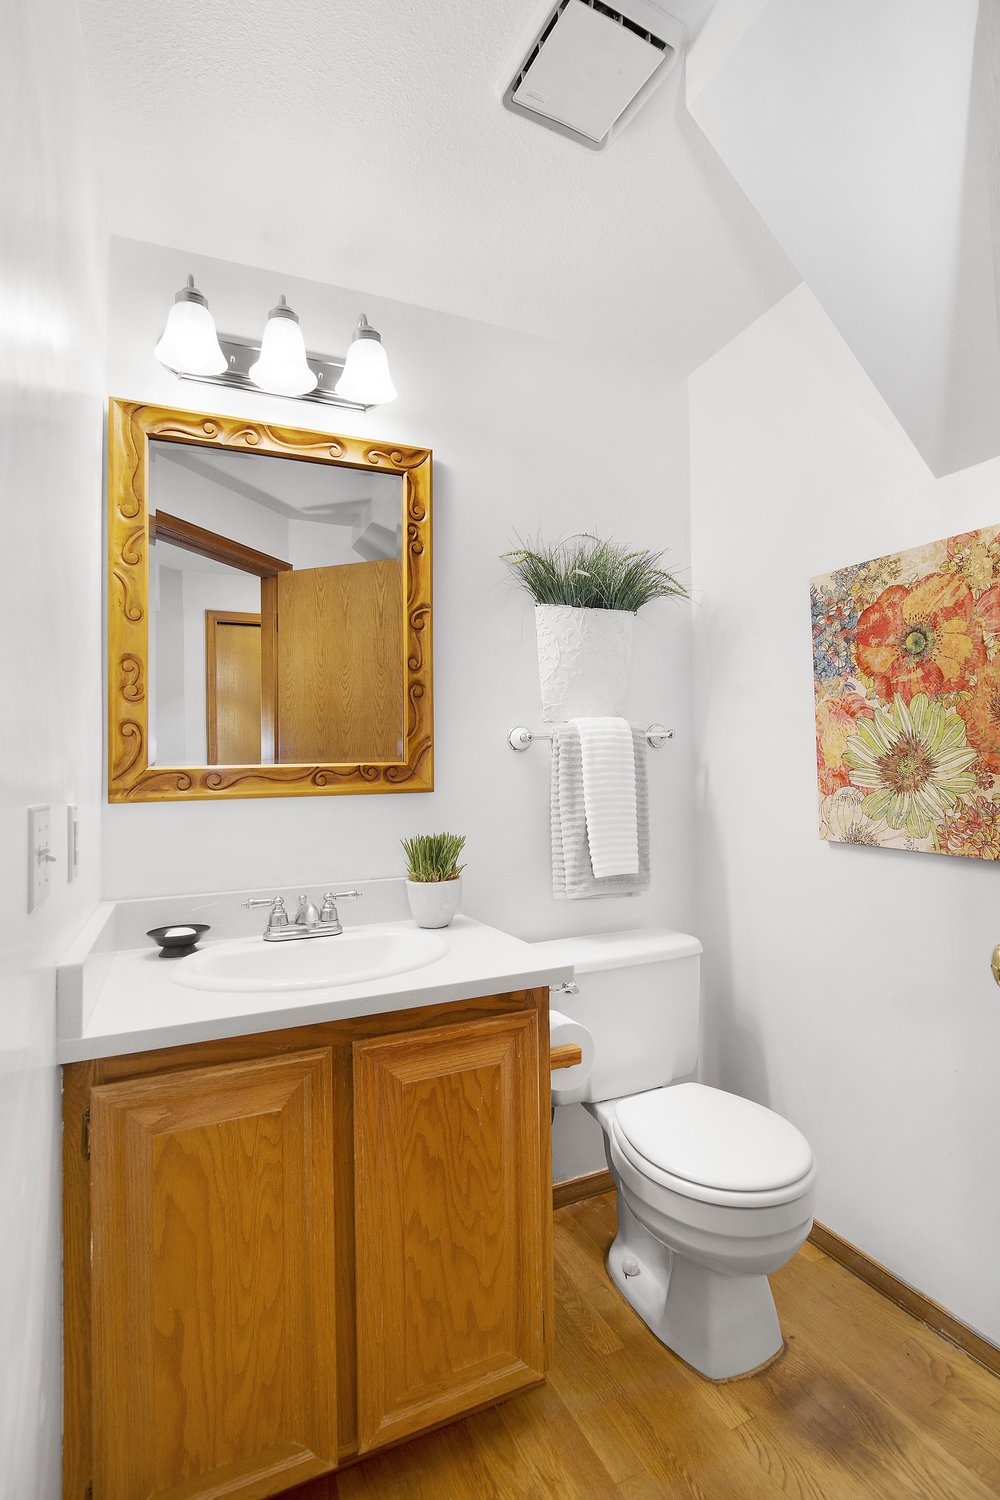 bothell_cul--de-sac_powder room1.jpg